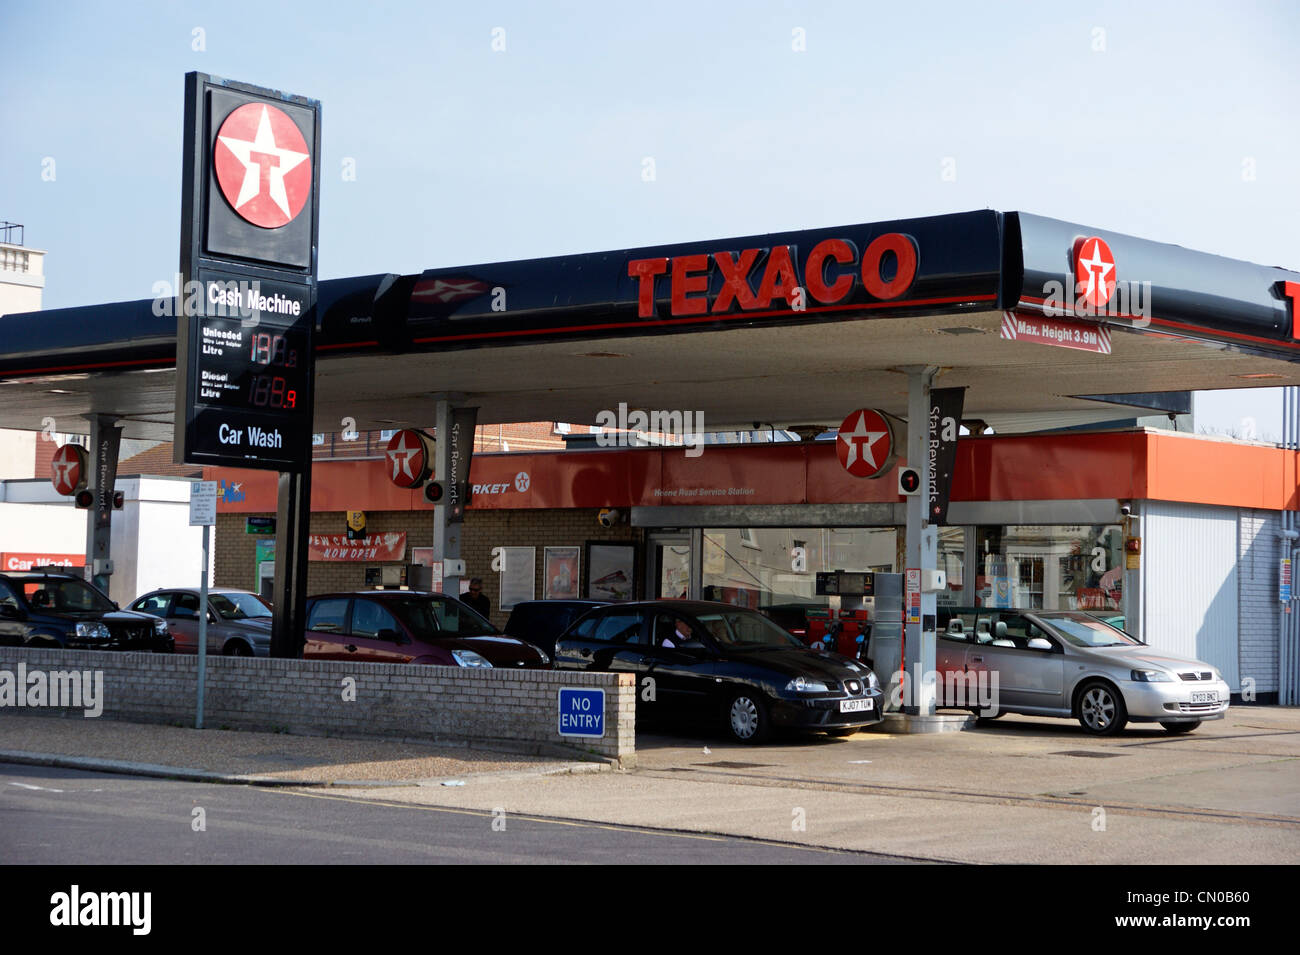 Fuel crisis texaco petrol station garage forecourt full for Garage energy automobiles